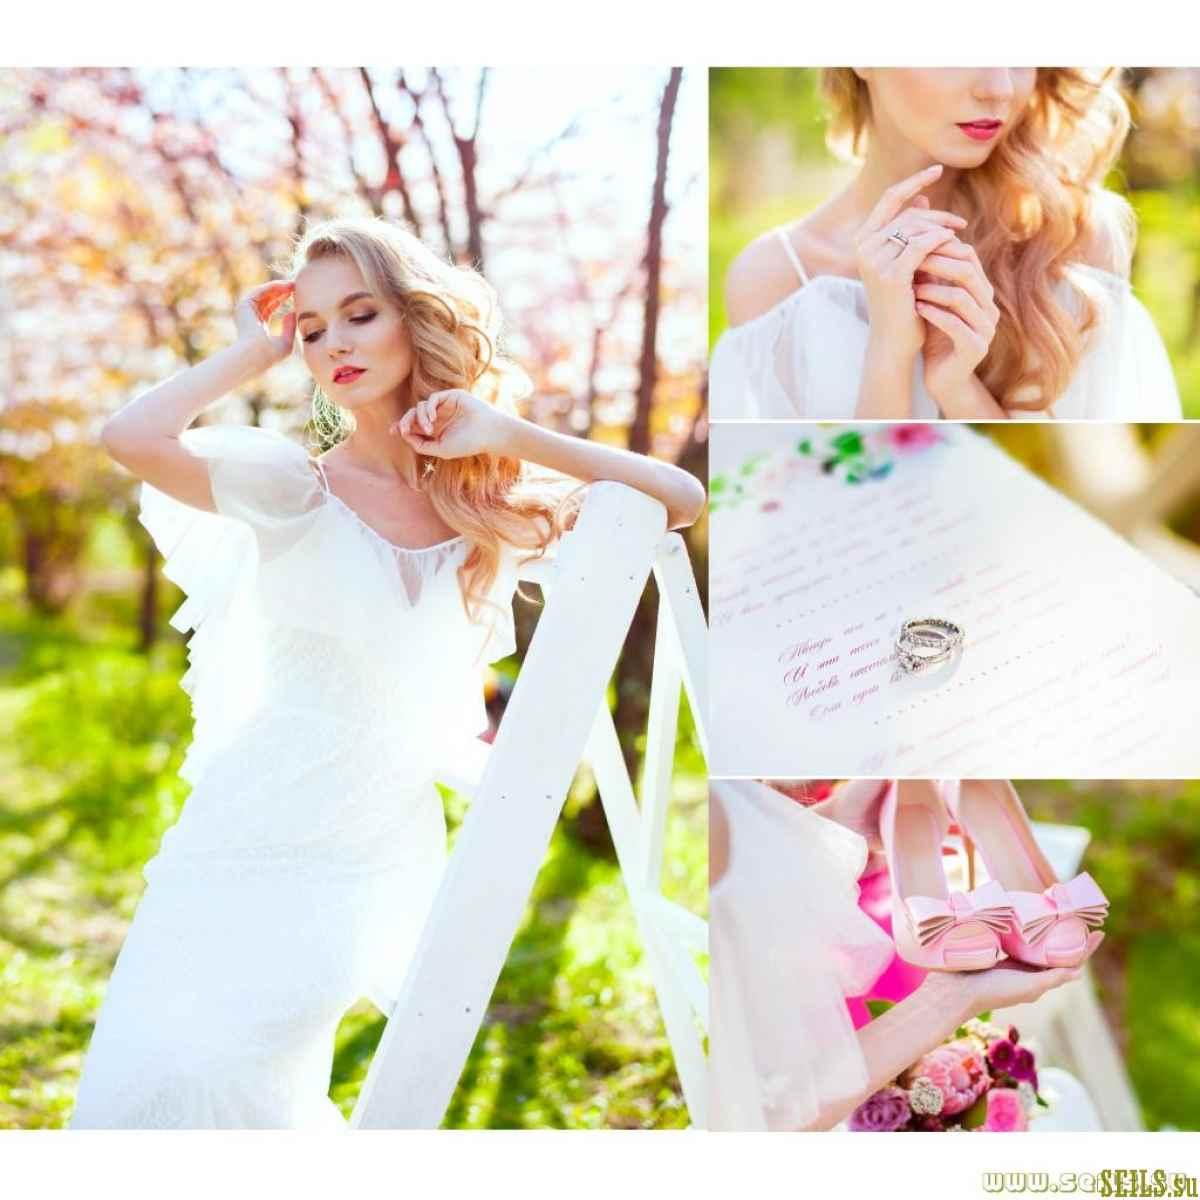 Creative Fashion Wedding Photoshooting